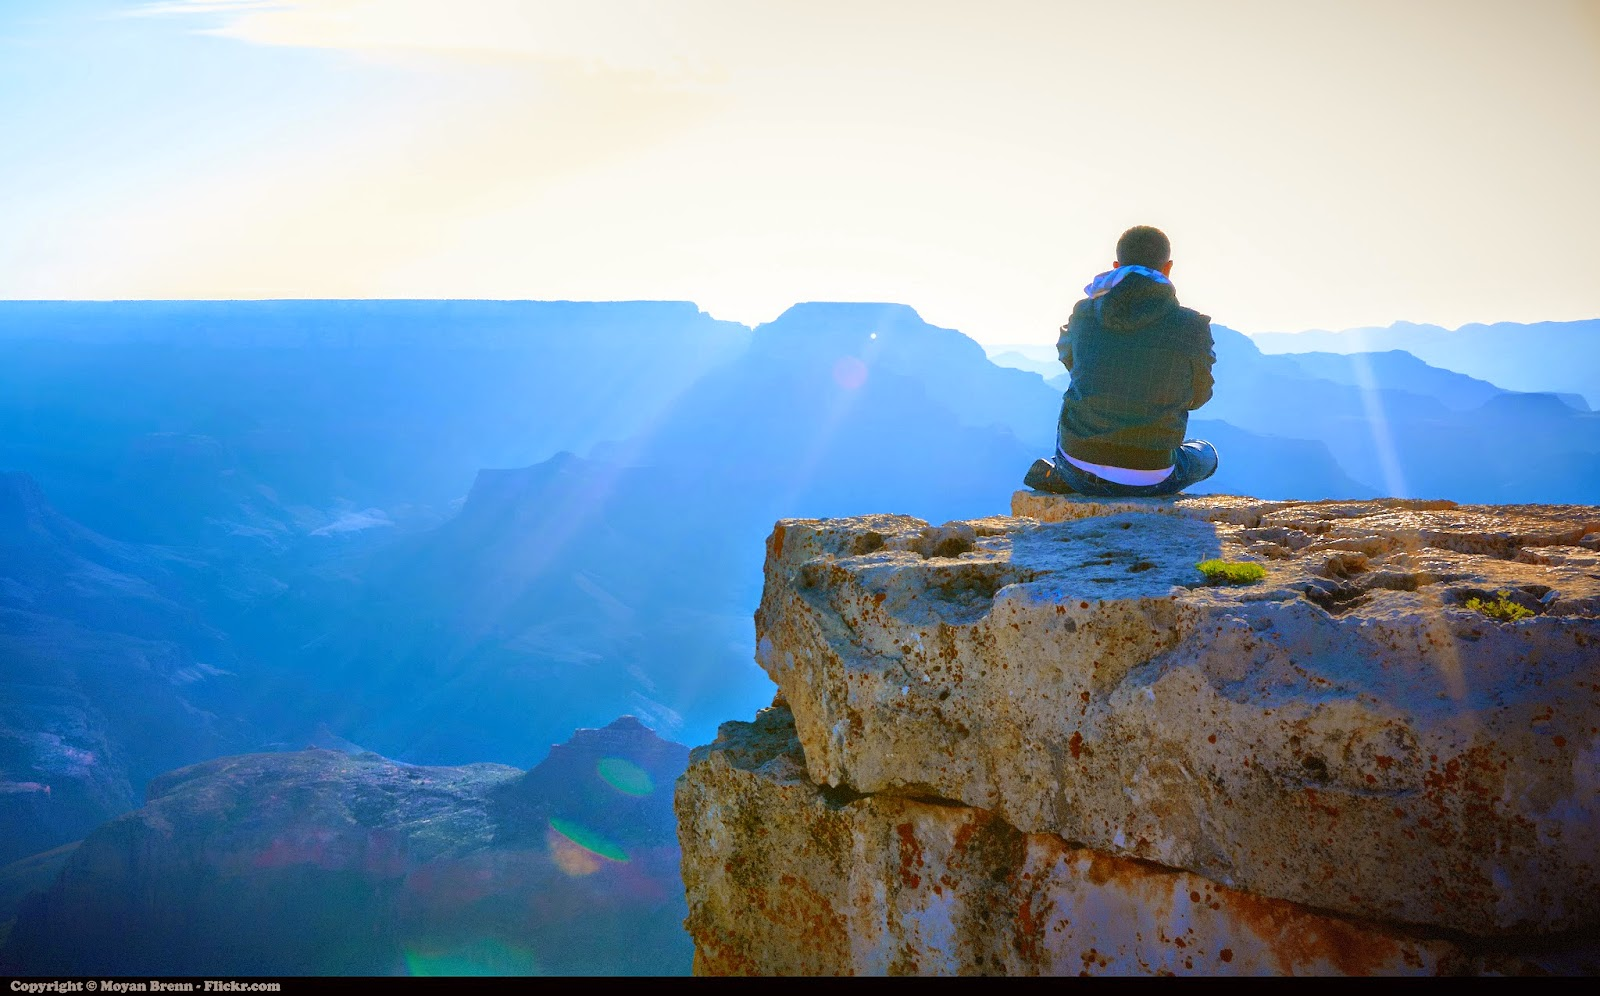 Meditation by Moyan Brenn: Man sitting on mountain top, looking at sunrise over valley.